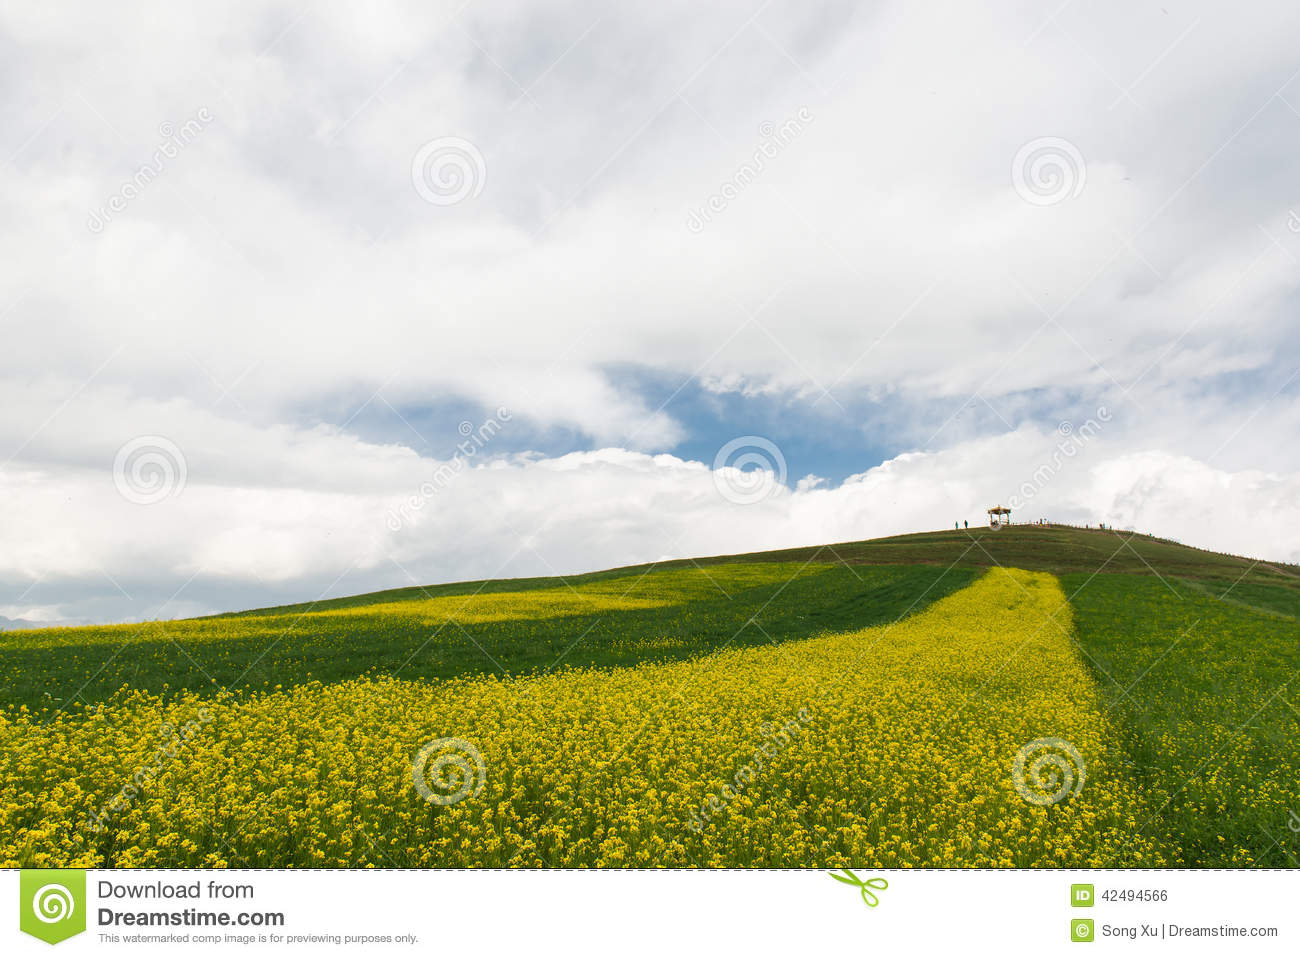 Of In Full Bloom Stock Photo Image Of Clouds High Area 42494566